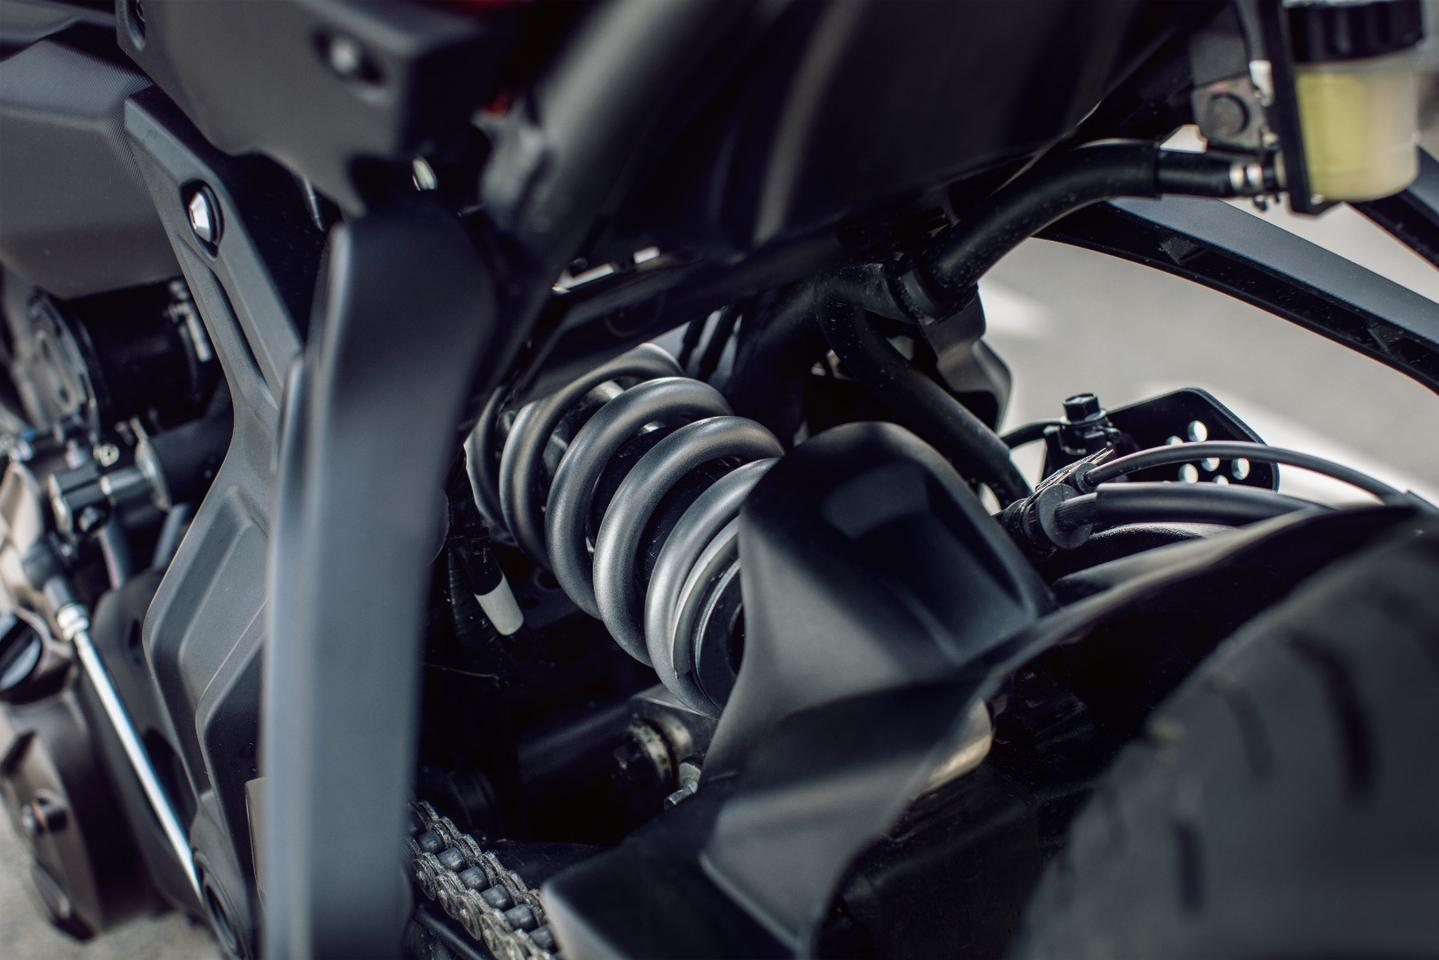 The rear shock of the Yamaha Tracer 700 is adjustable only for preload